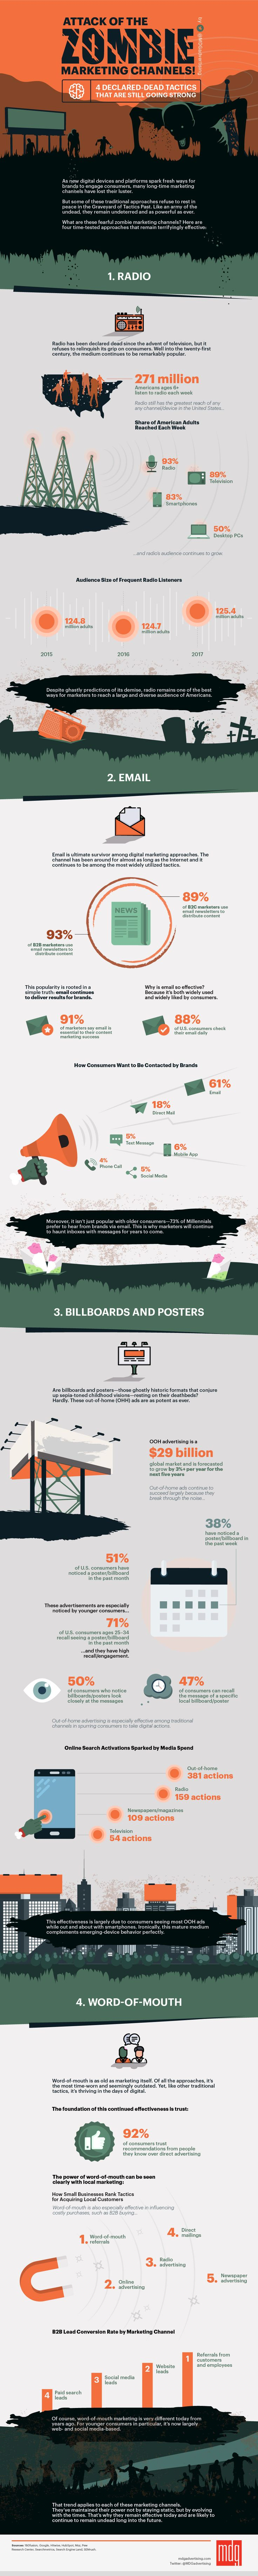 Attack of the Zombie Marketing Channels [Infographic]   Social Media Today